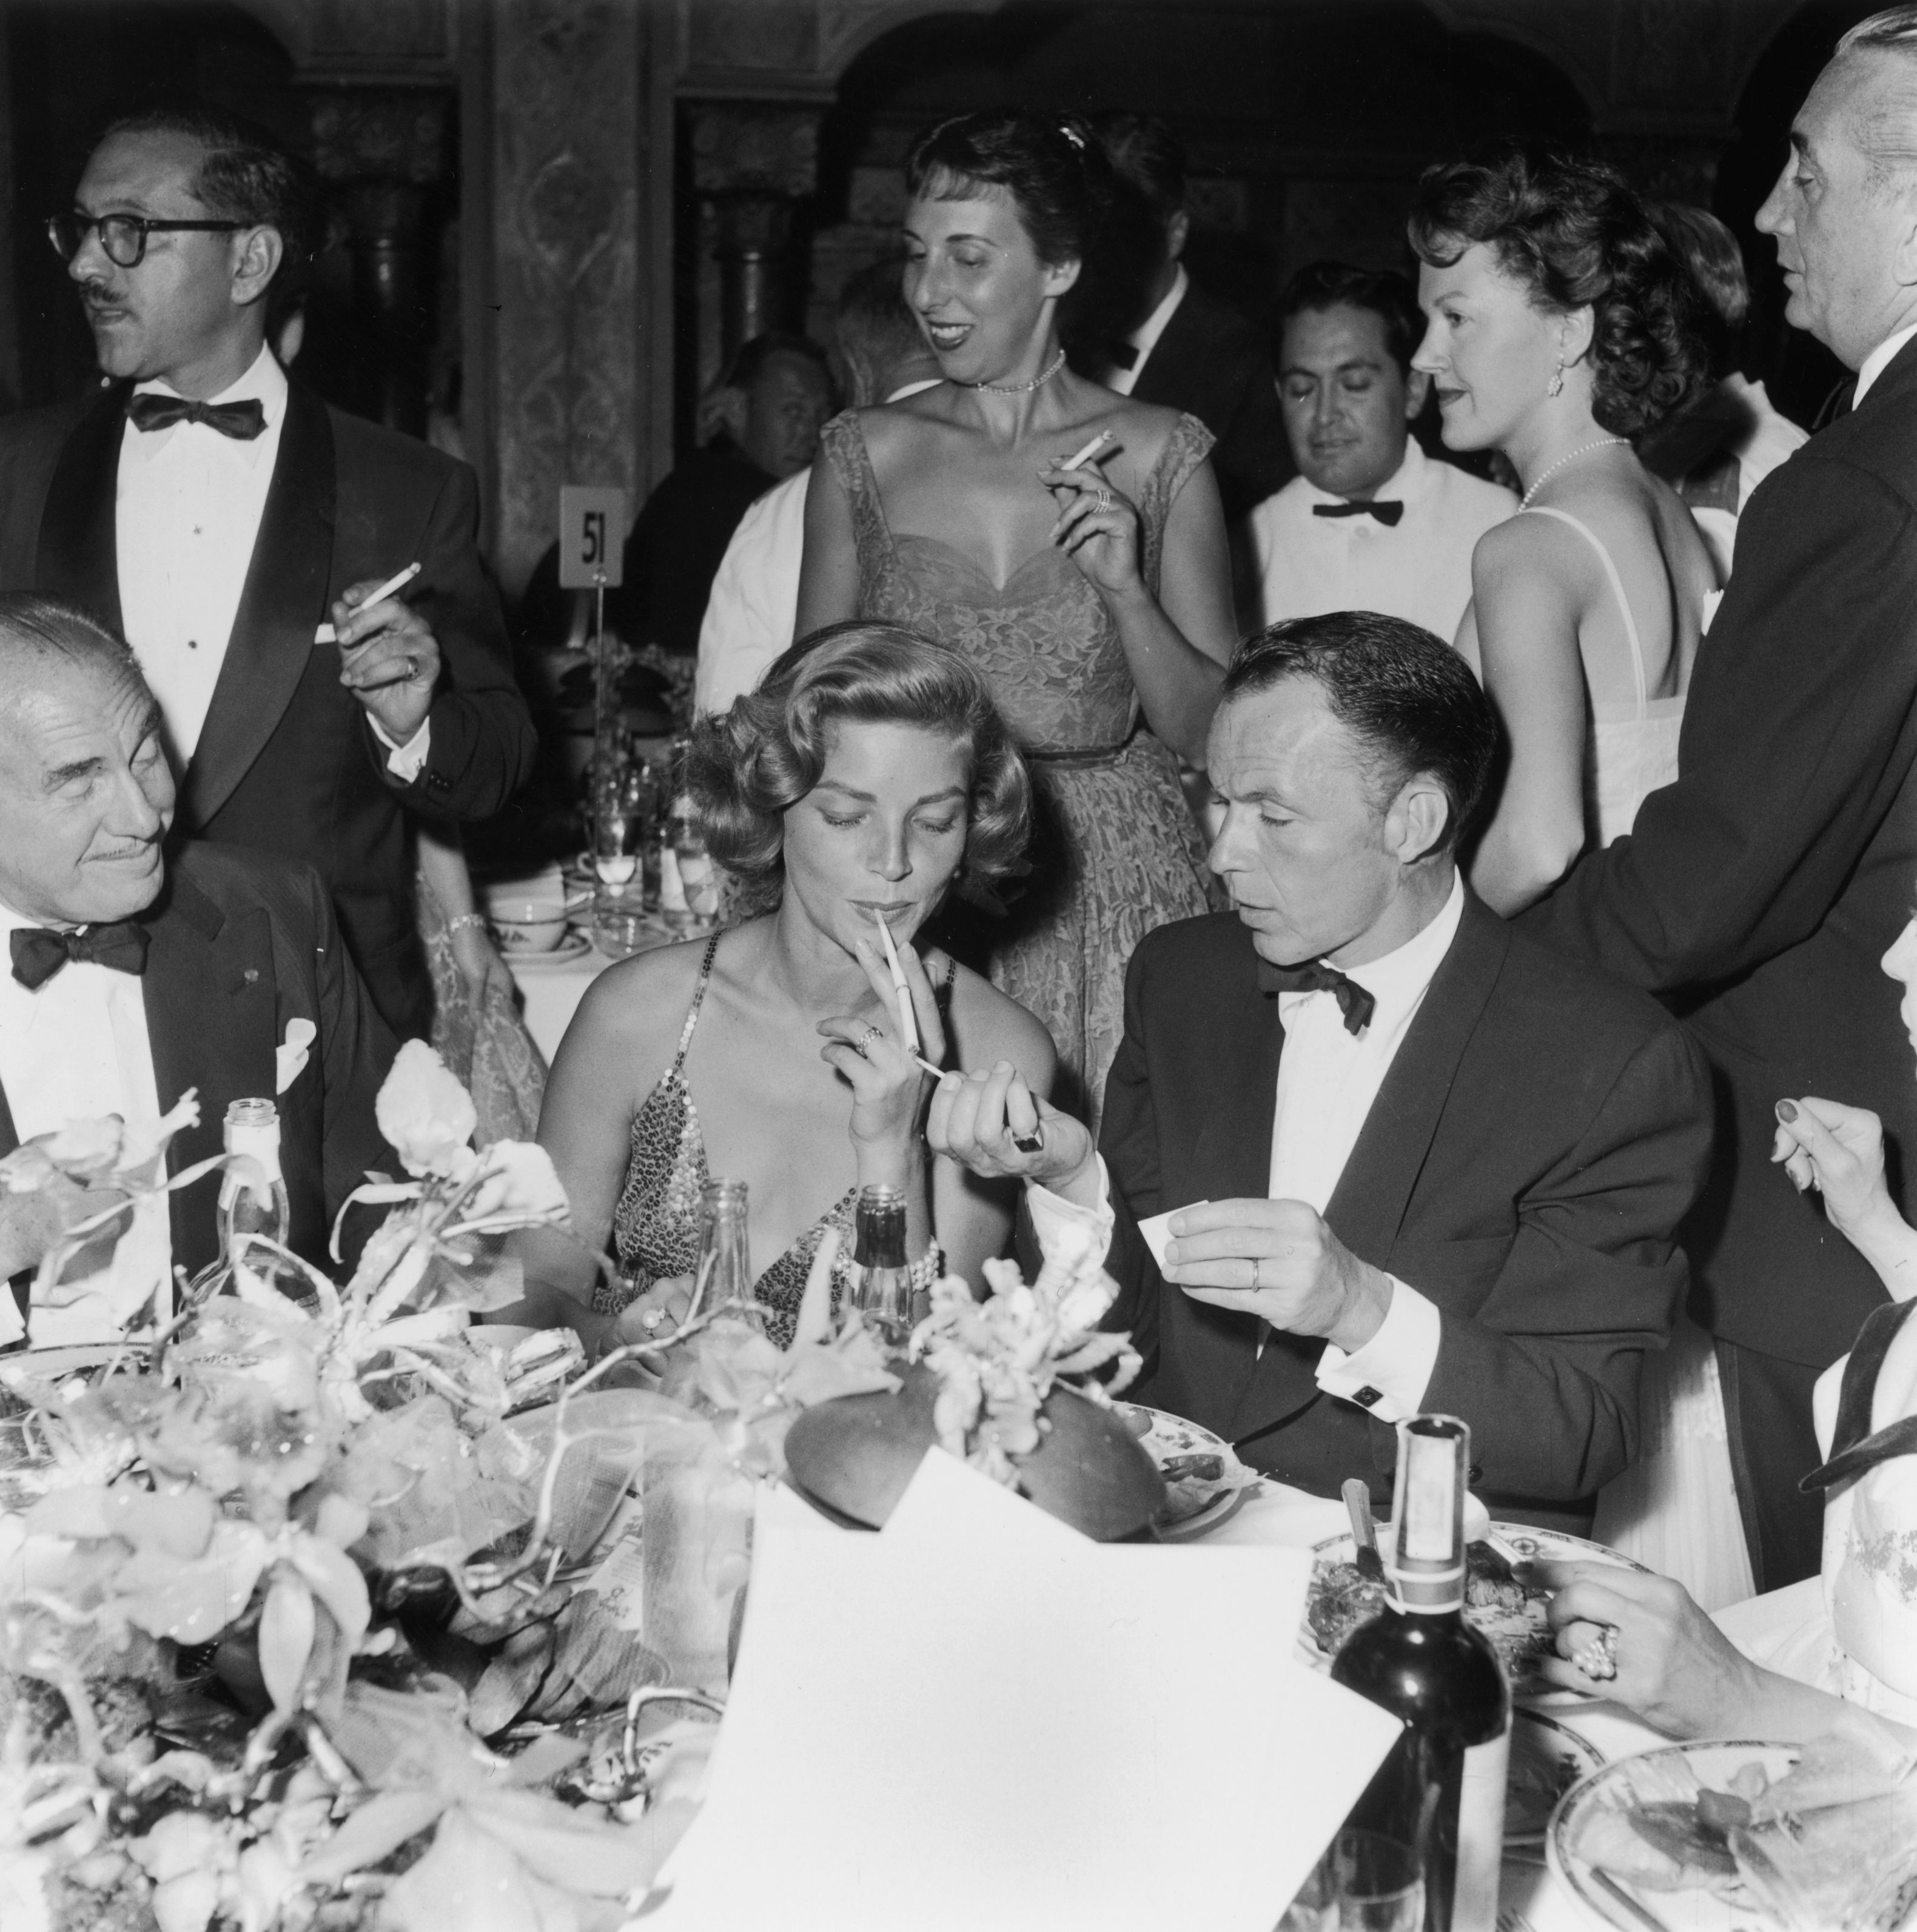 Iconic Hollywood Party Photos From the Past